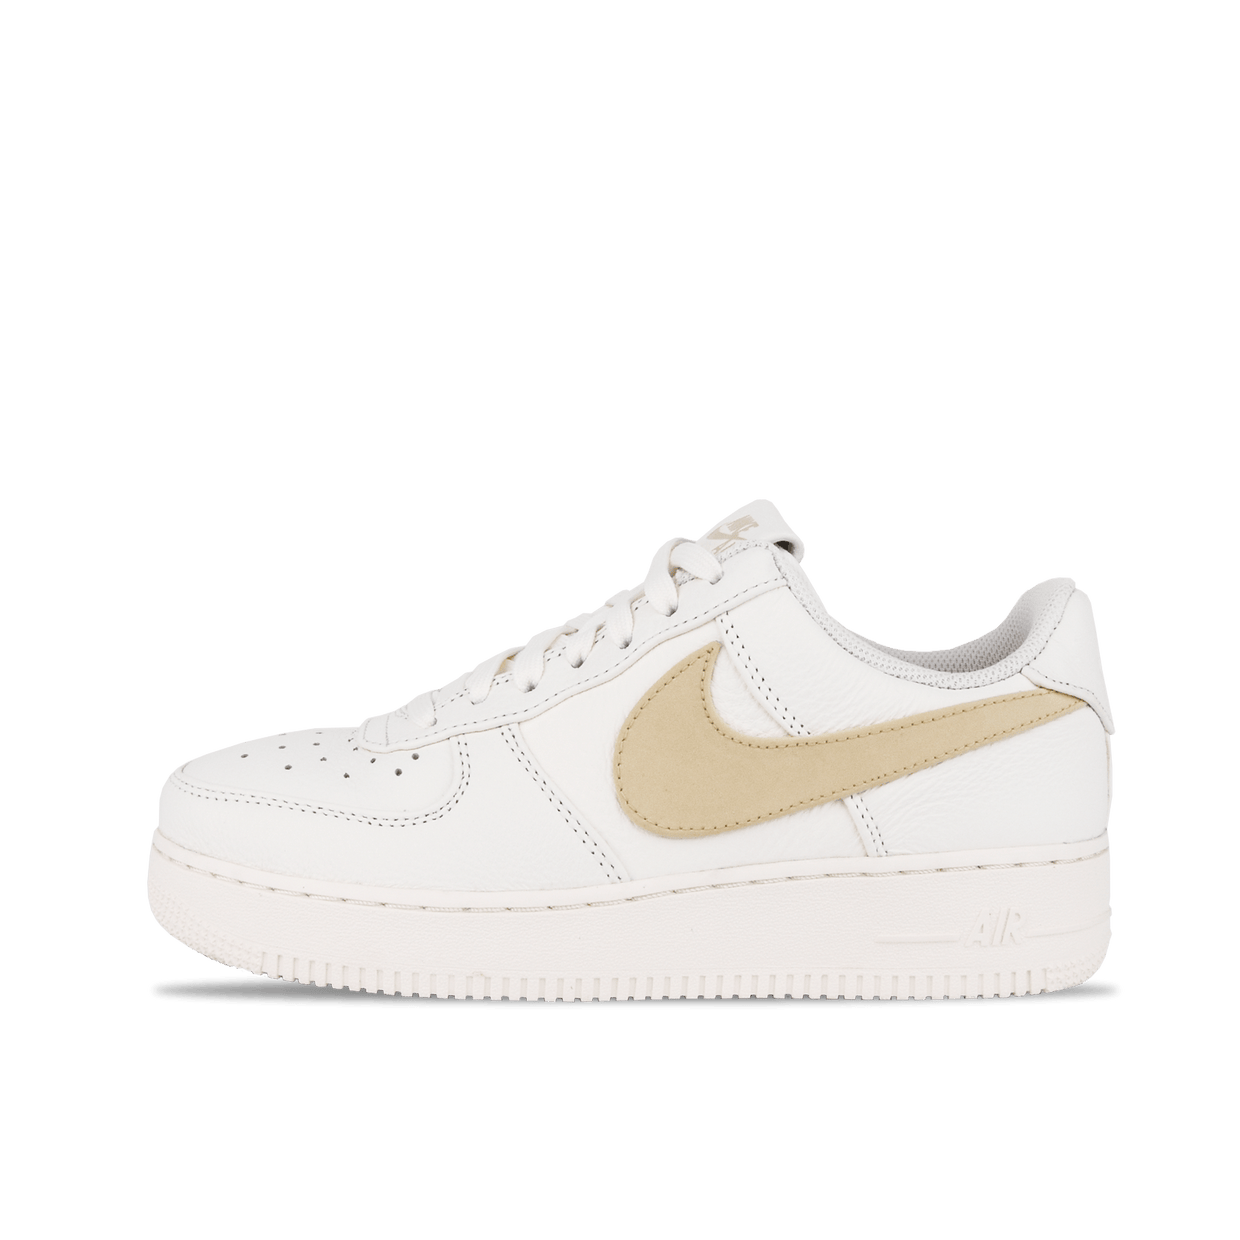 Air Force 1 '07 PRM 2 - Sail/Pale Vanilla